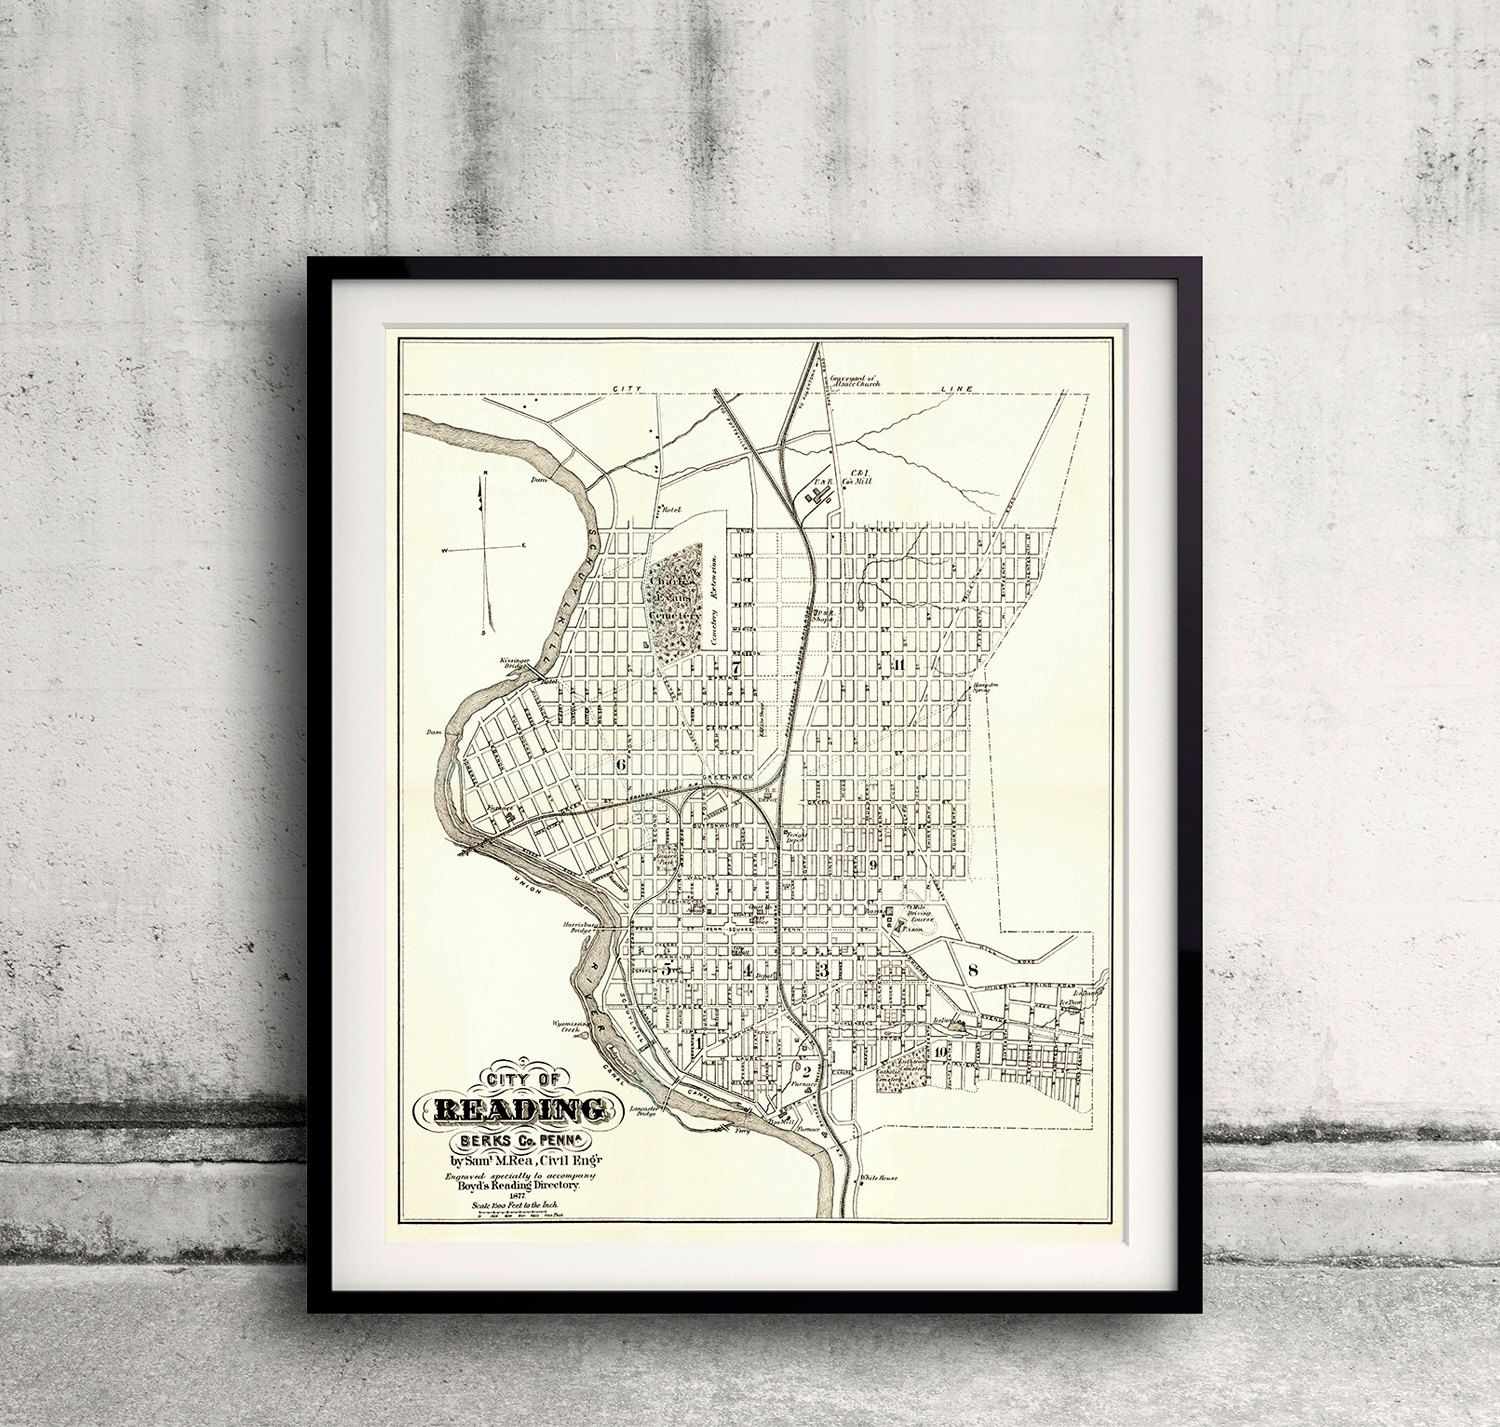 Map of Reading - Pennsylvania - 1877 - FREE SHIPPING - SKU 0091 by PaulMaps on Etsy